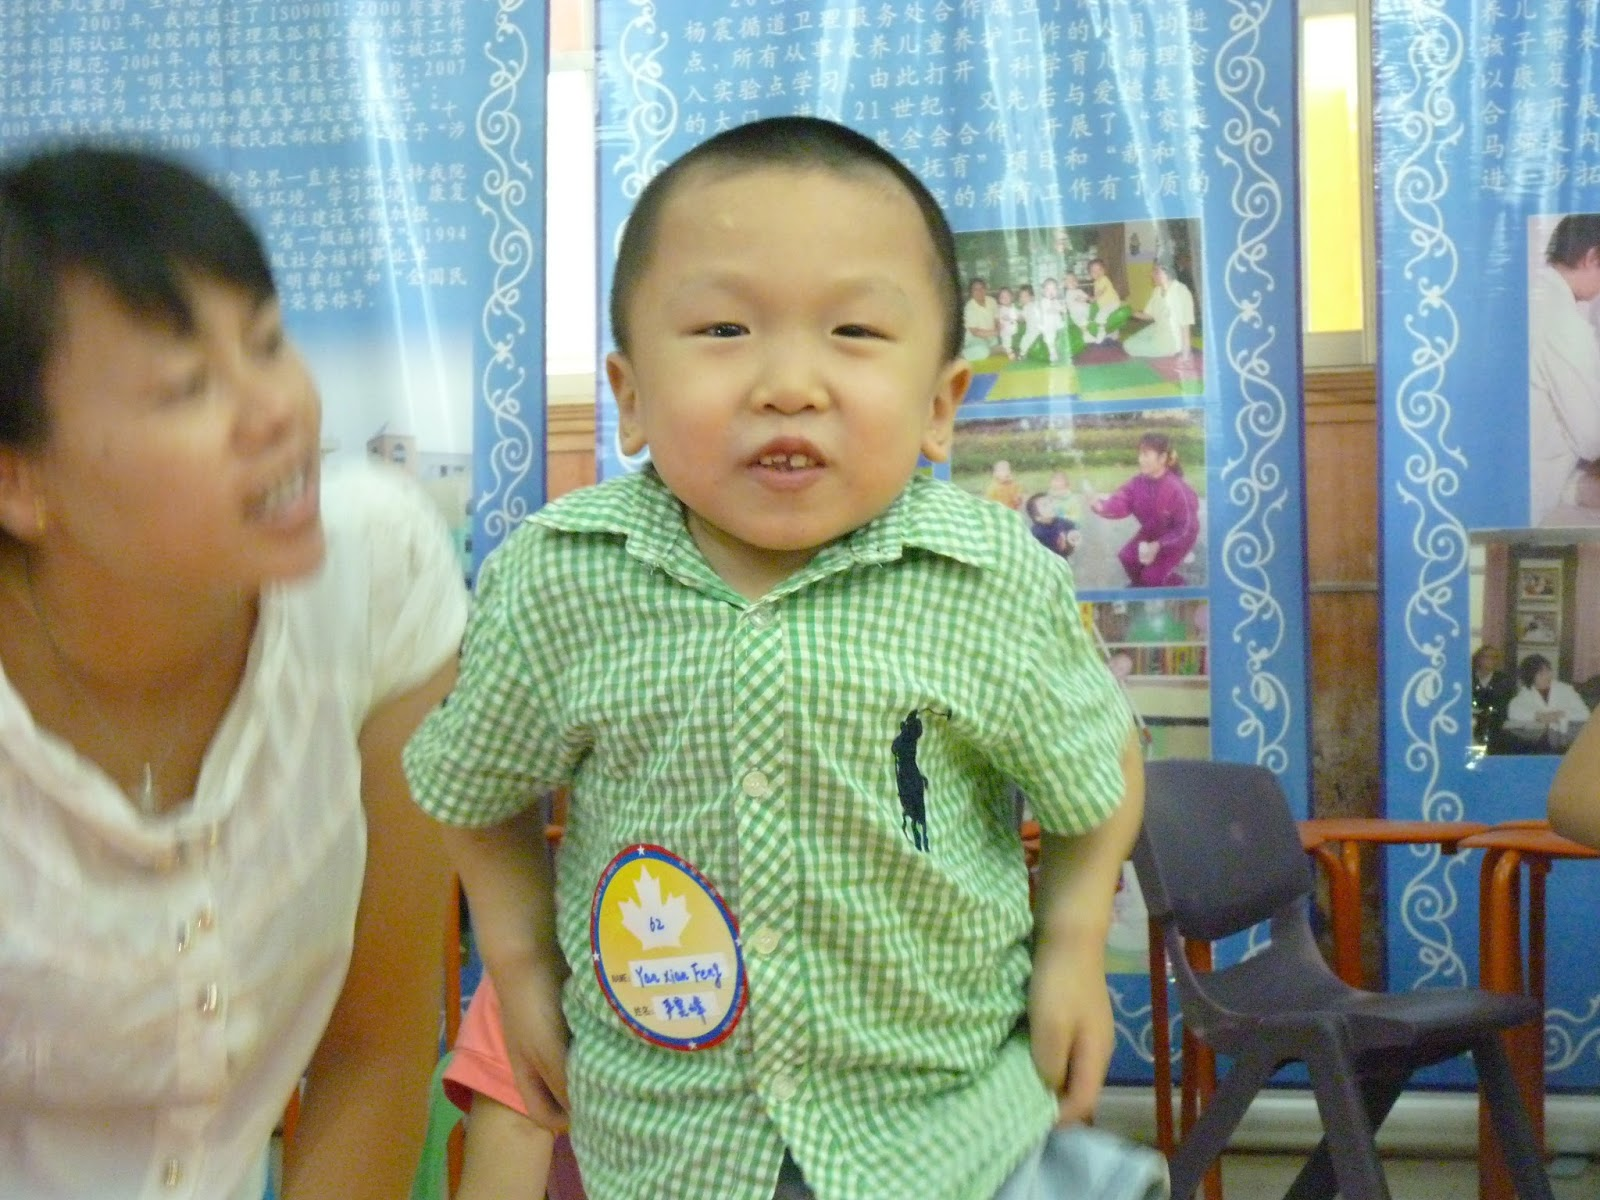 2 Years Old From China He Has Oi  And Is Described As Being Very Smart And Friendly He Has Had Many  Discussions With